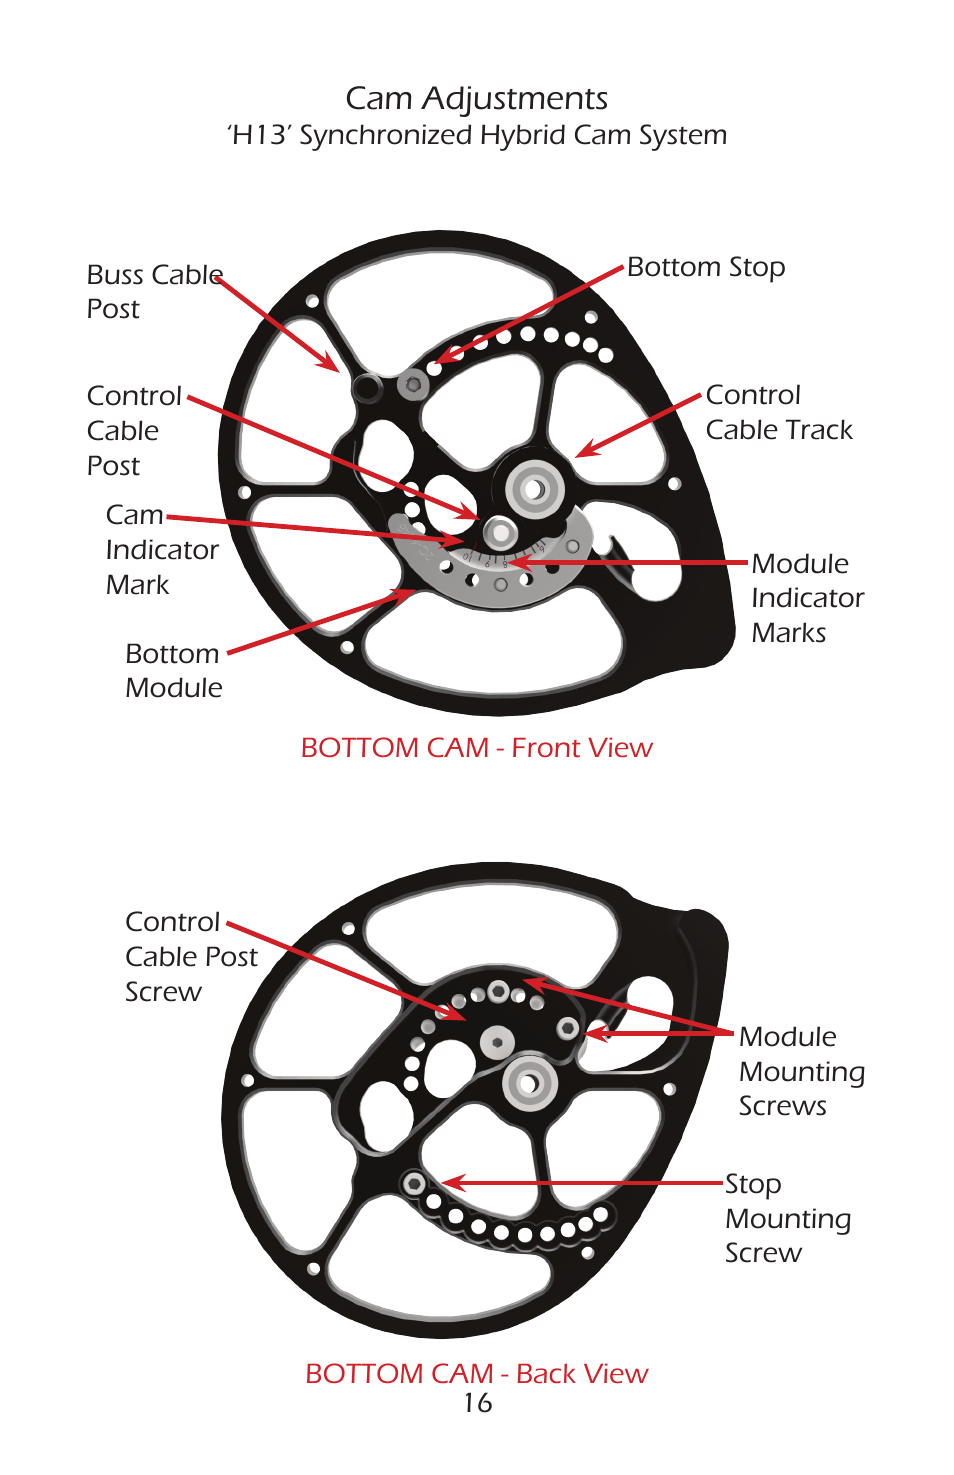 Cam adjustments   Bear Archery Compound Bow 2014 User Manual   Page